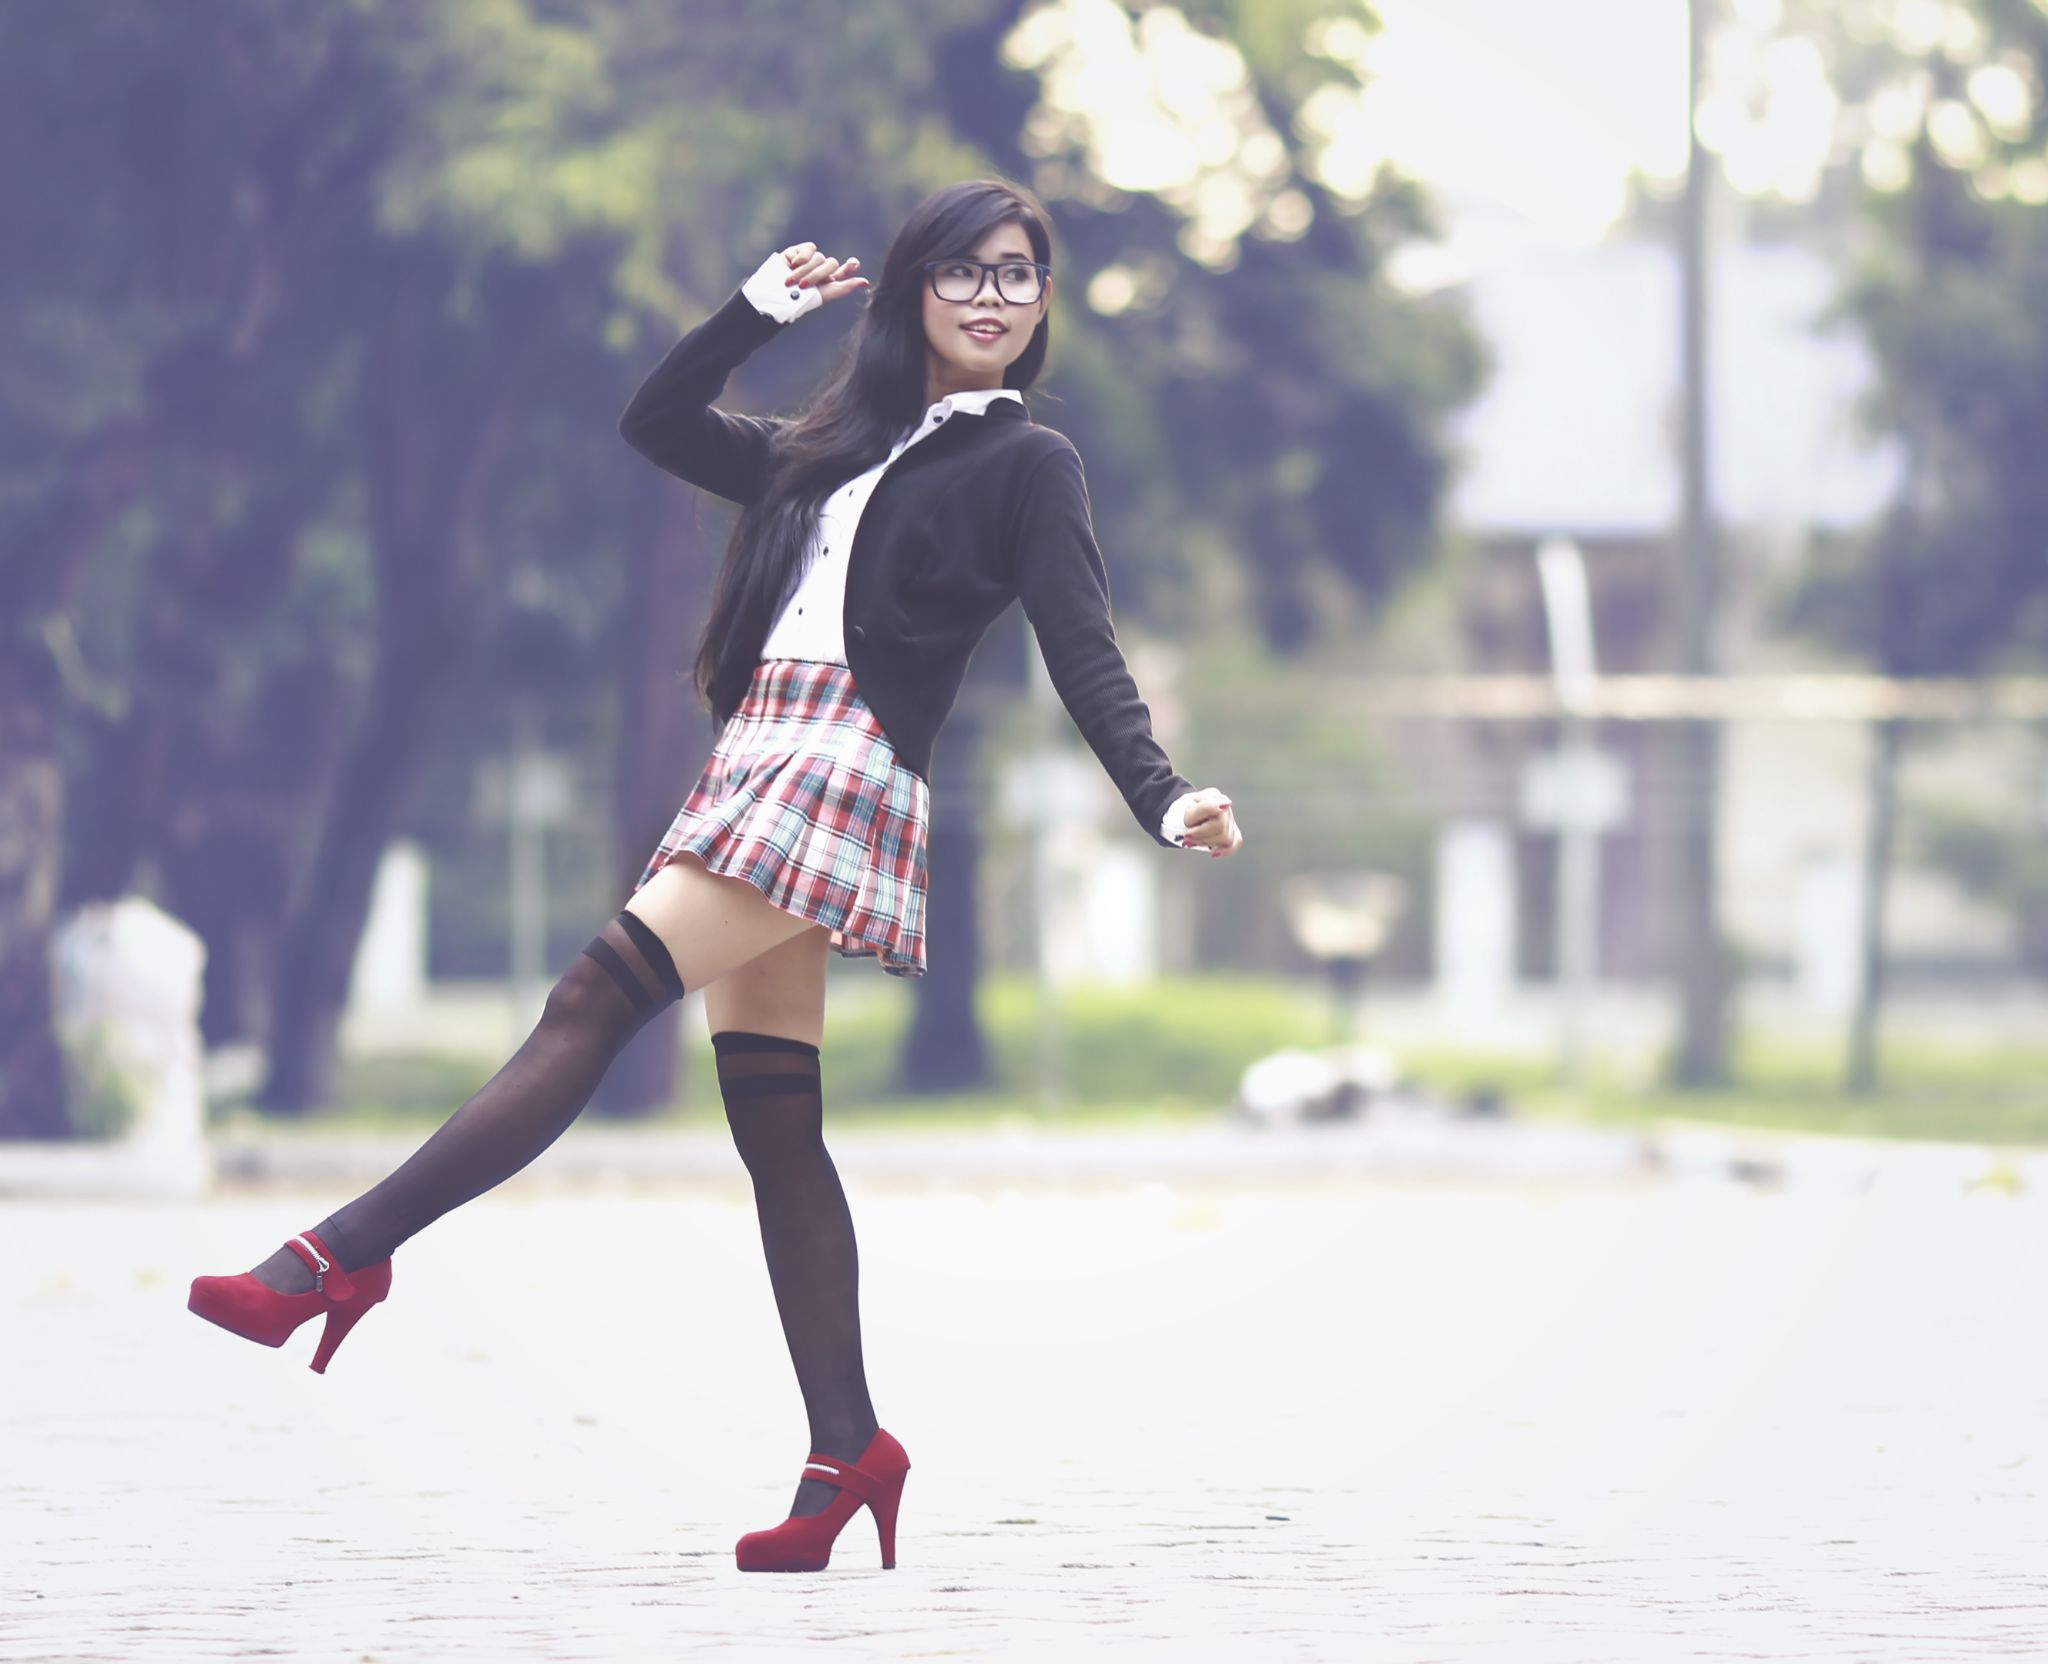 Come Dancing With me by WAHYU